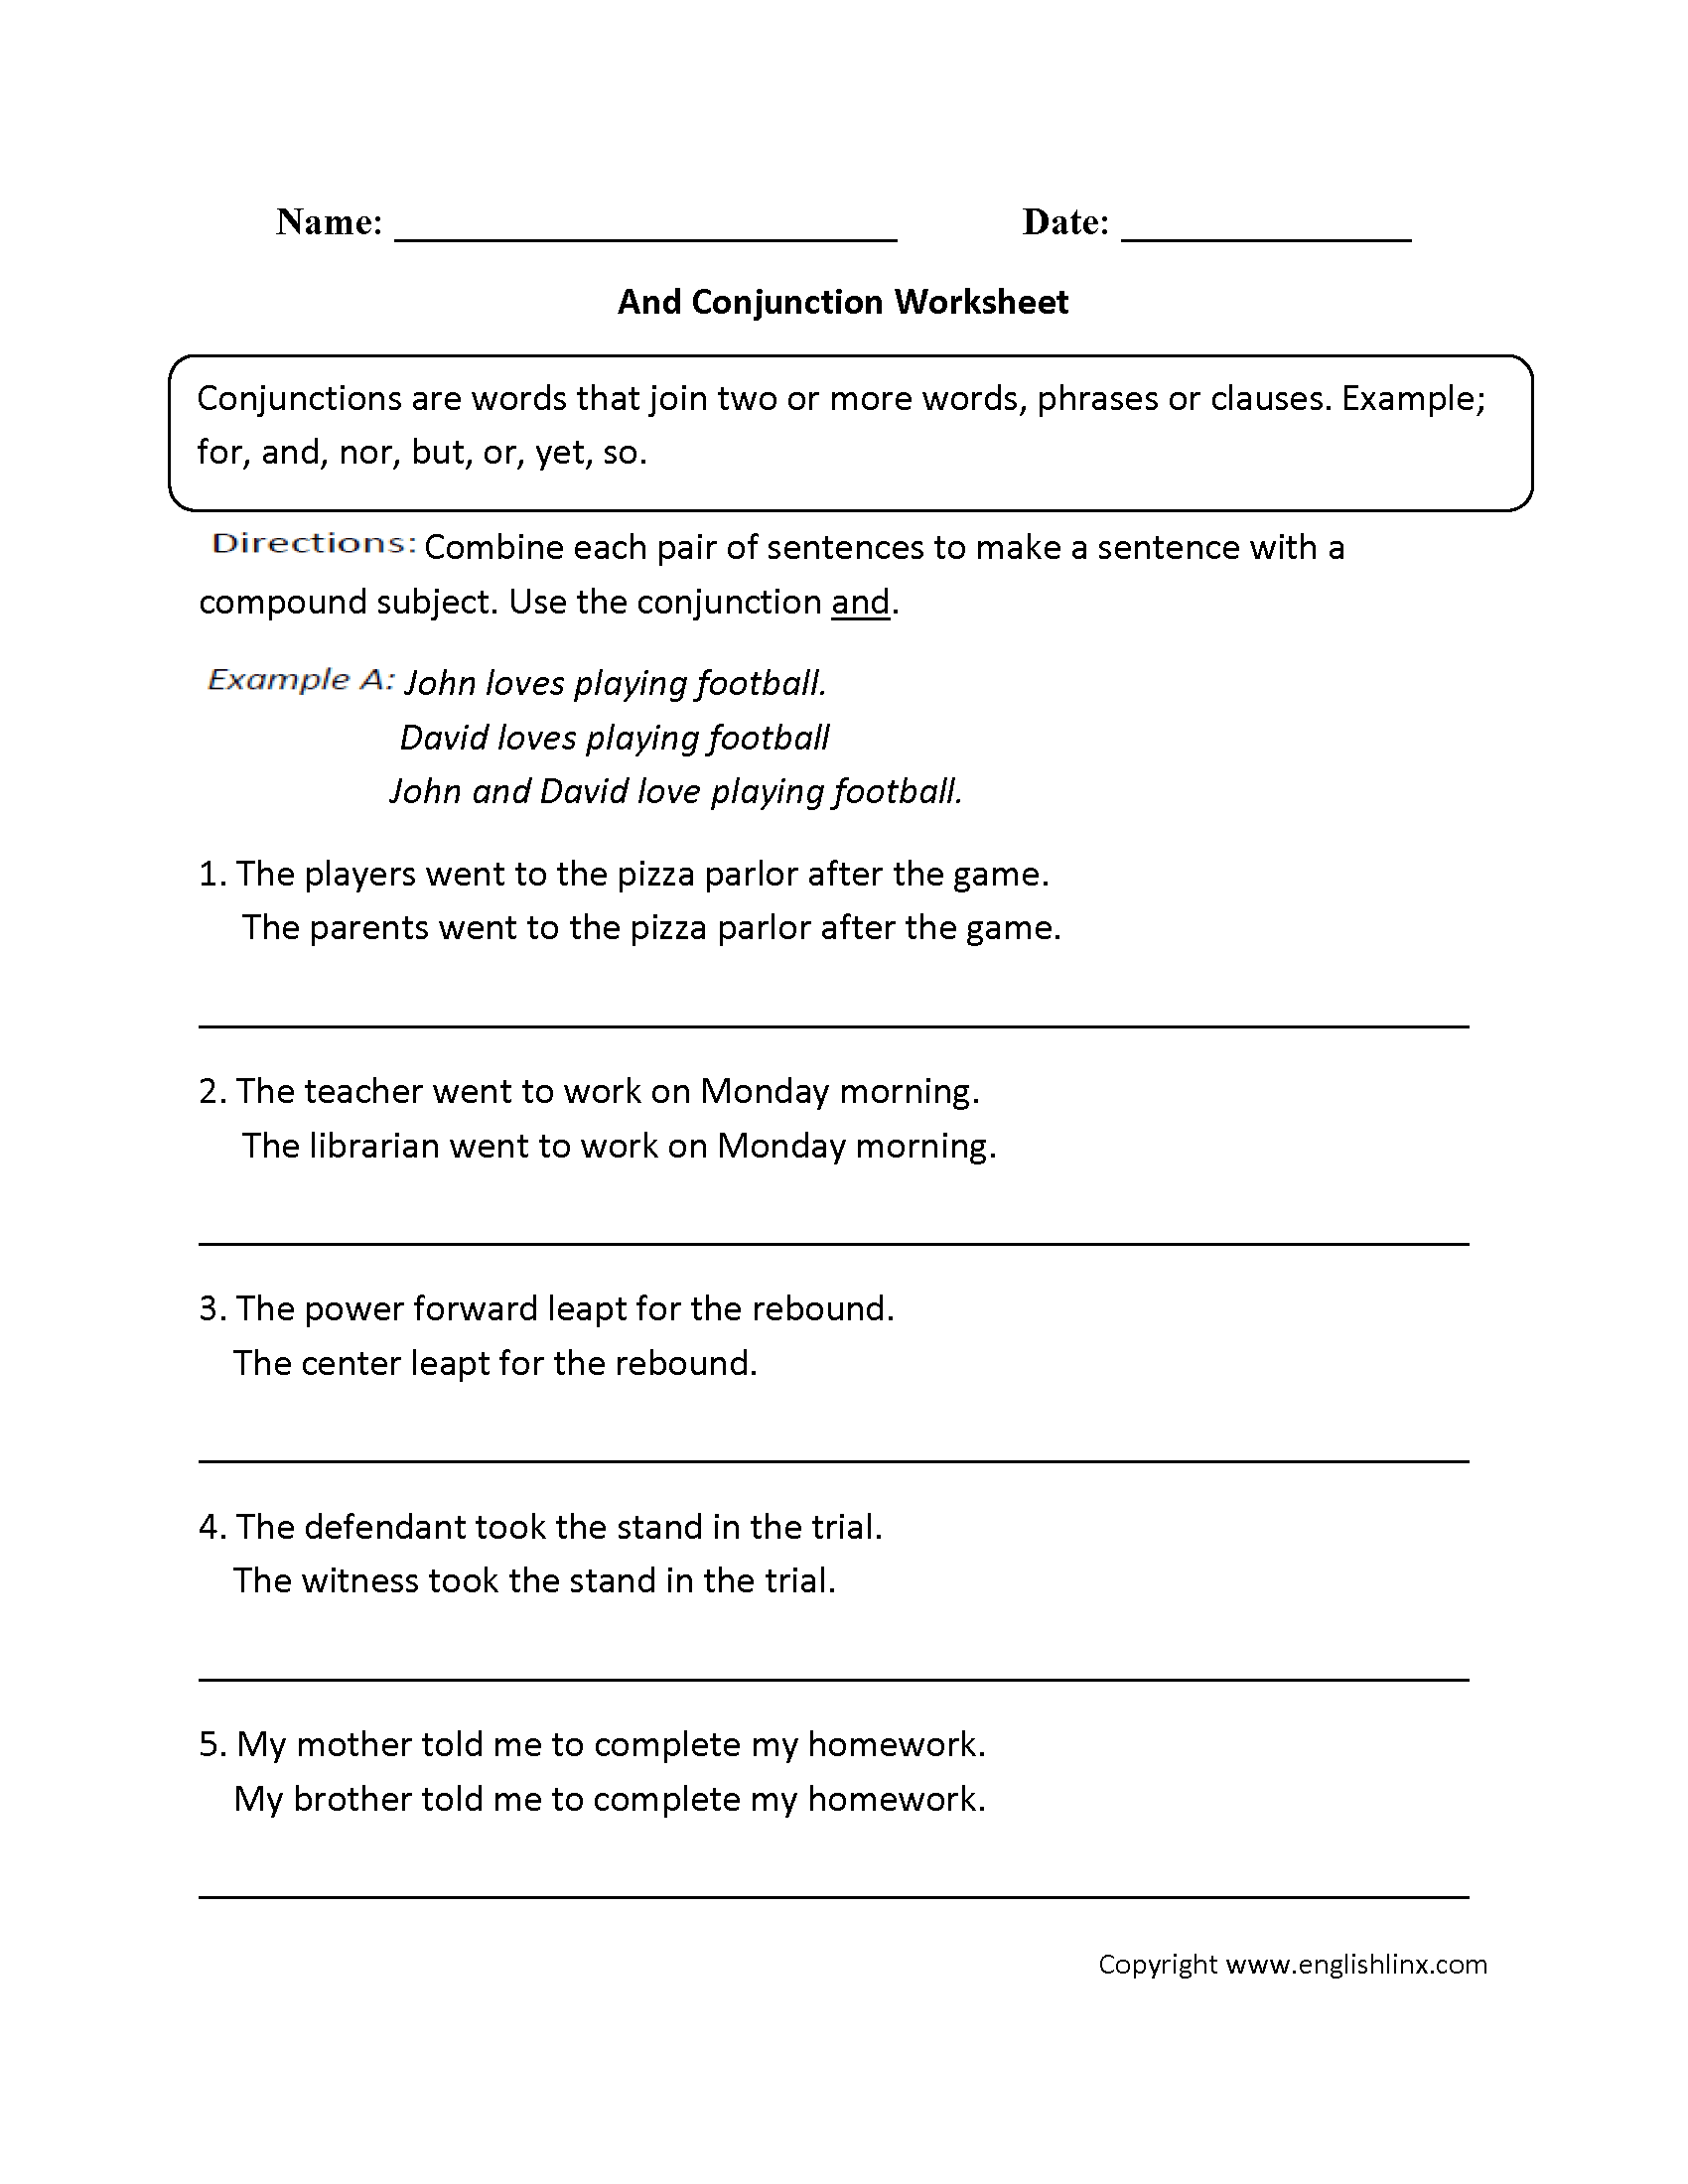 Worksheets Conjunction Worksheets Cheatslist Free Worksheets For Kids Amp Printable